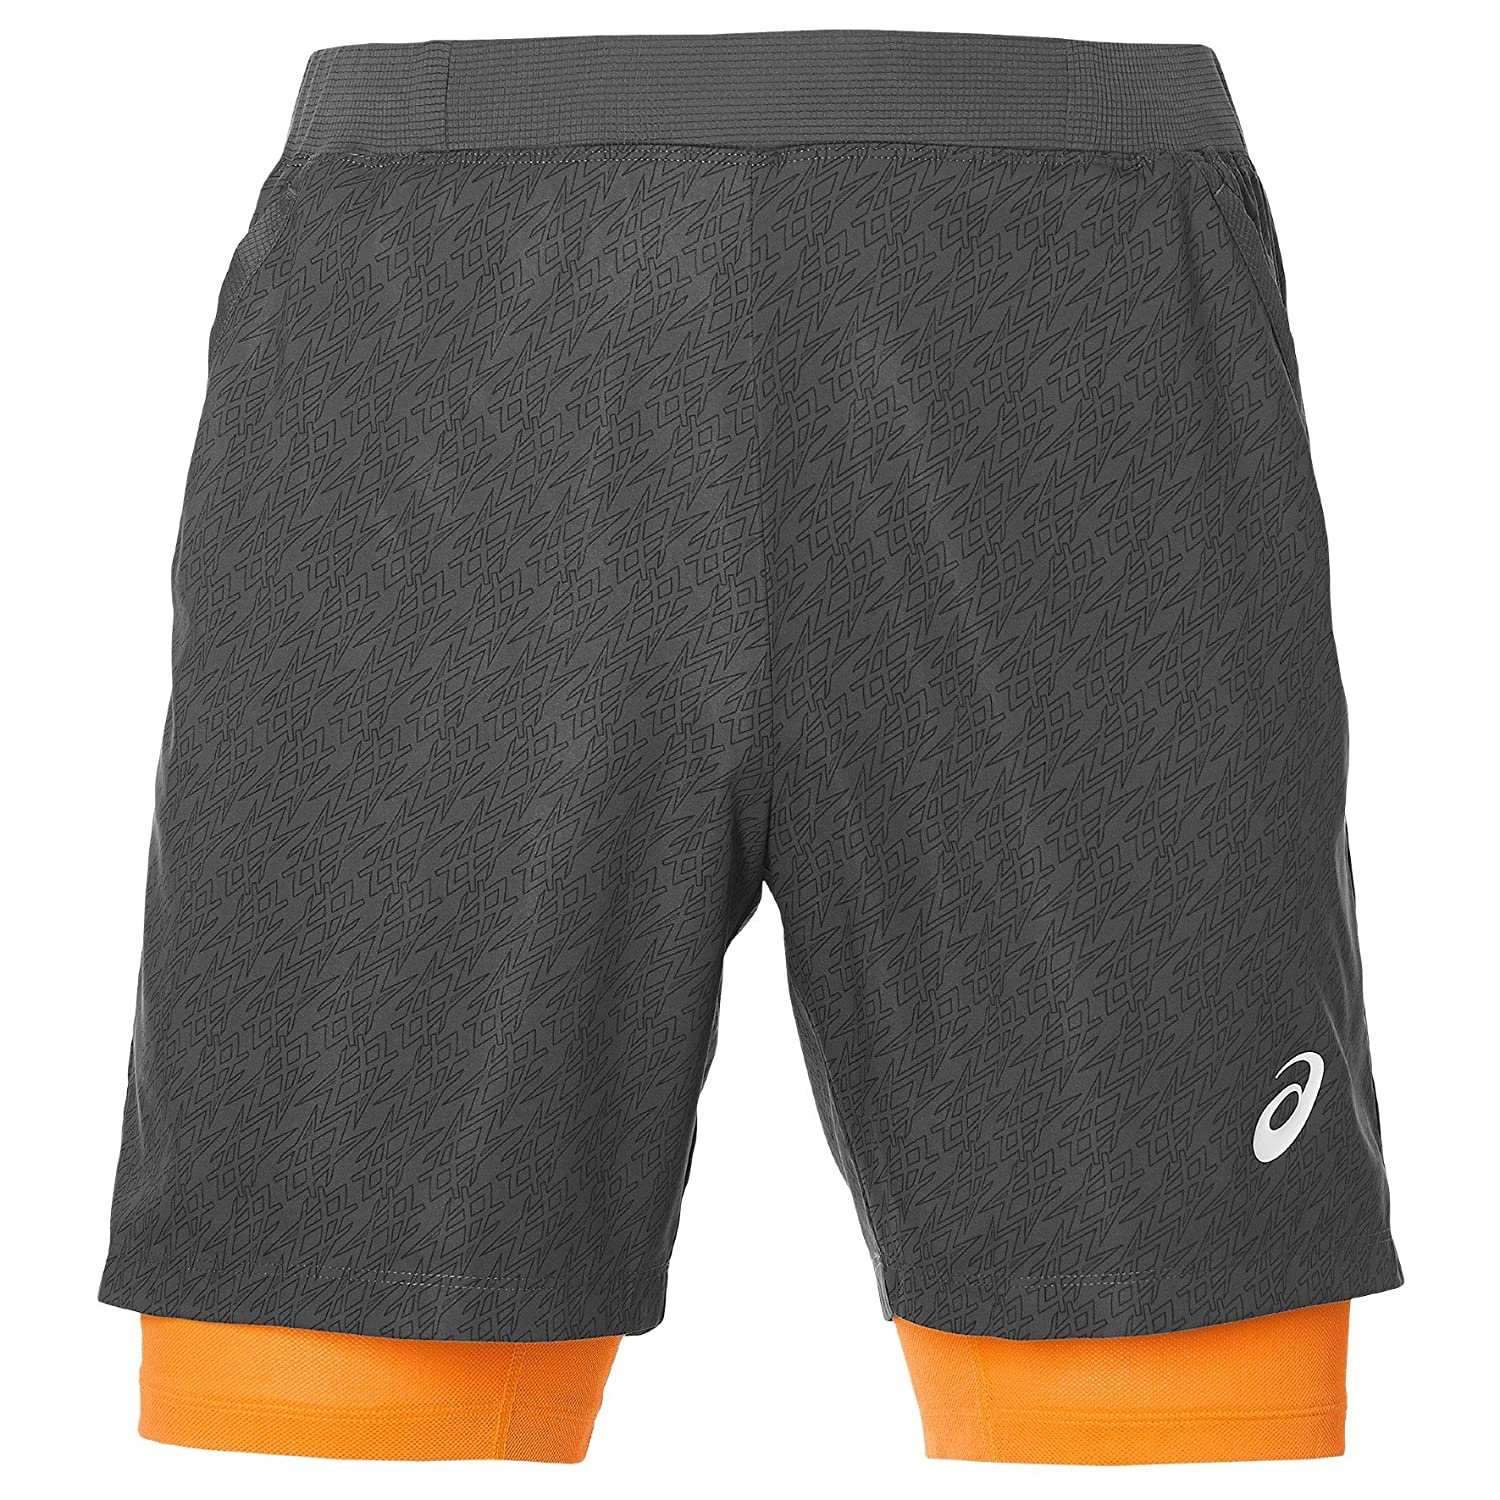 ASICS Padel Player GPX 7in 2in1 Pantalones Cortos, Hombre